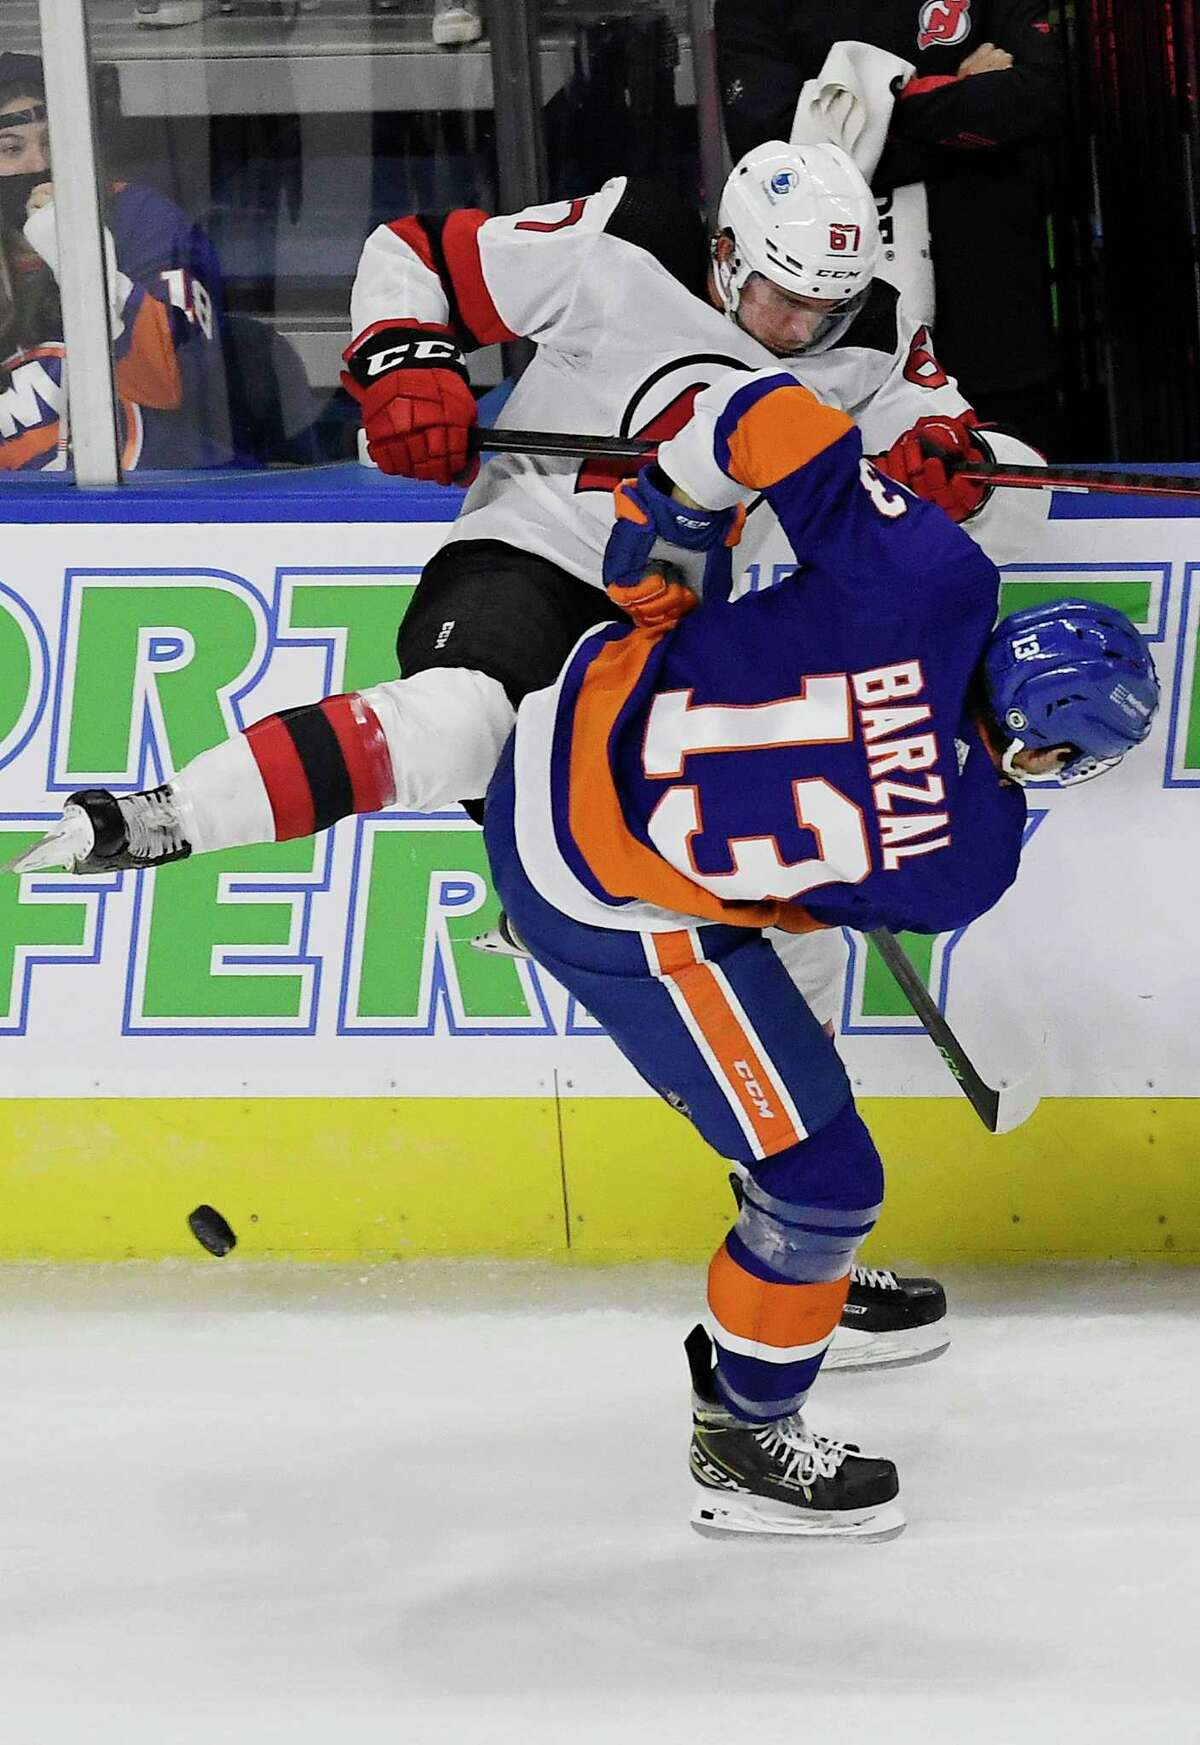 The New Jersey Devils' Marian Studenic is checked by the New York Islanders' Mathew Barzal during a preseason game Saturday in Bridgeport.